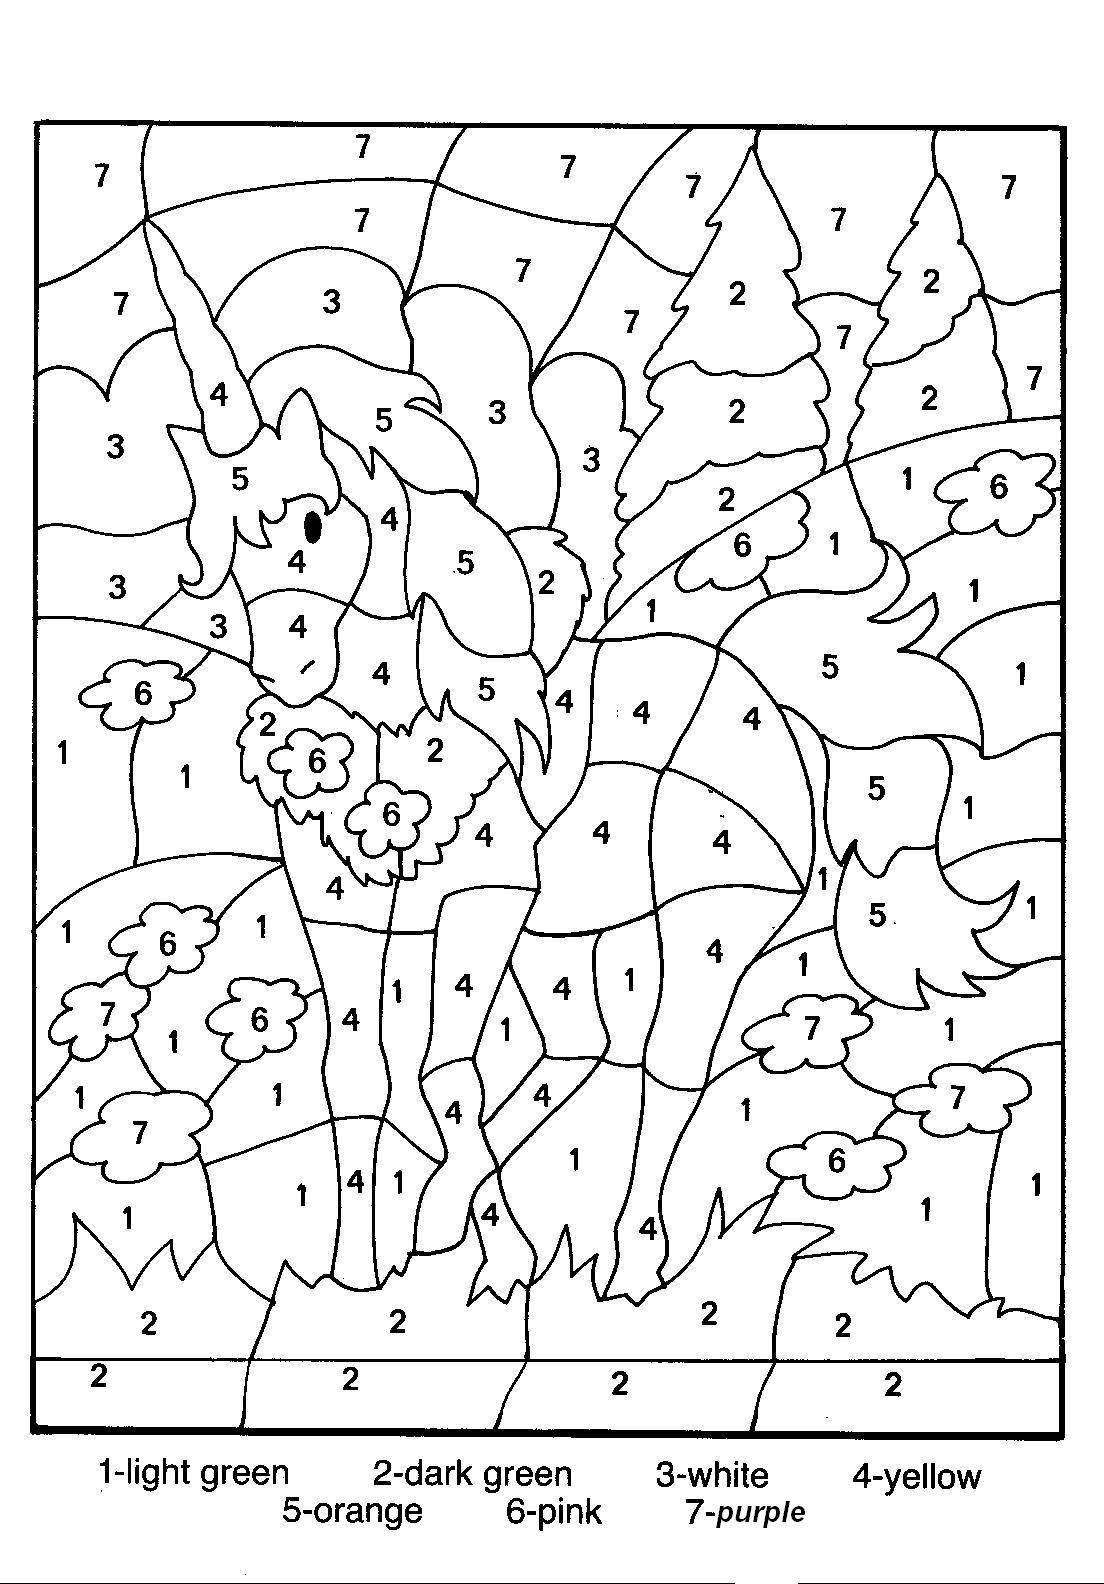 6th grade science coloring pages photo - 1